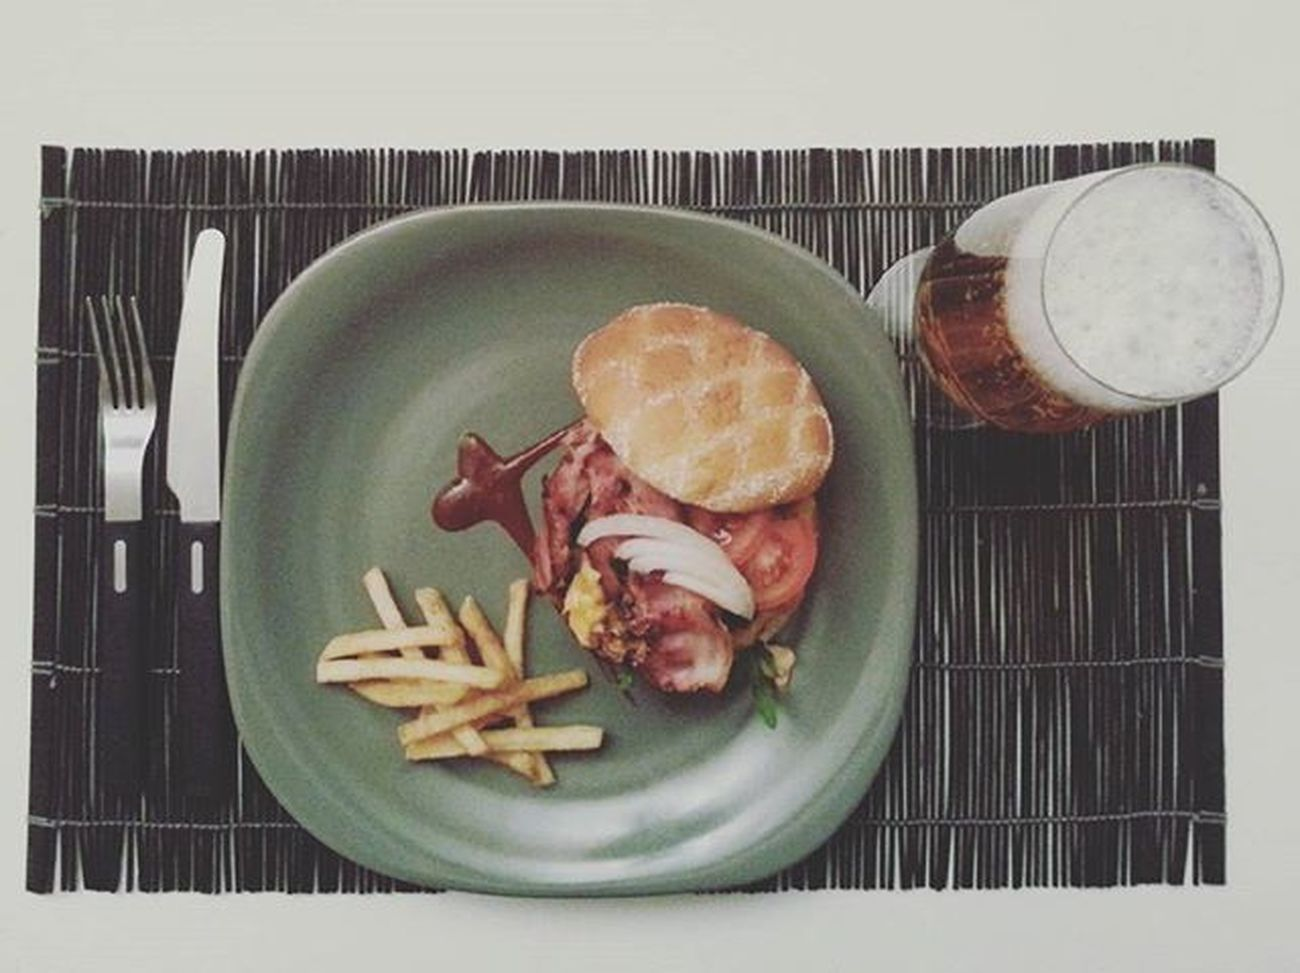 Hubbys seduction continues with his signature dish. The deceptively simple burger. Served with a cold beer. Mmmmm Mykitchenromeo Hubbyskitchen Hamburger Burger Rocketleaves Rocket Onions Tomato Ruccola Bacon Liquidsmoke Sriracha Fries Pommesfrites Coldbeer Beer